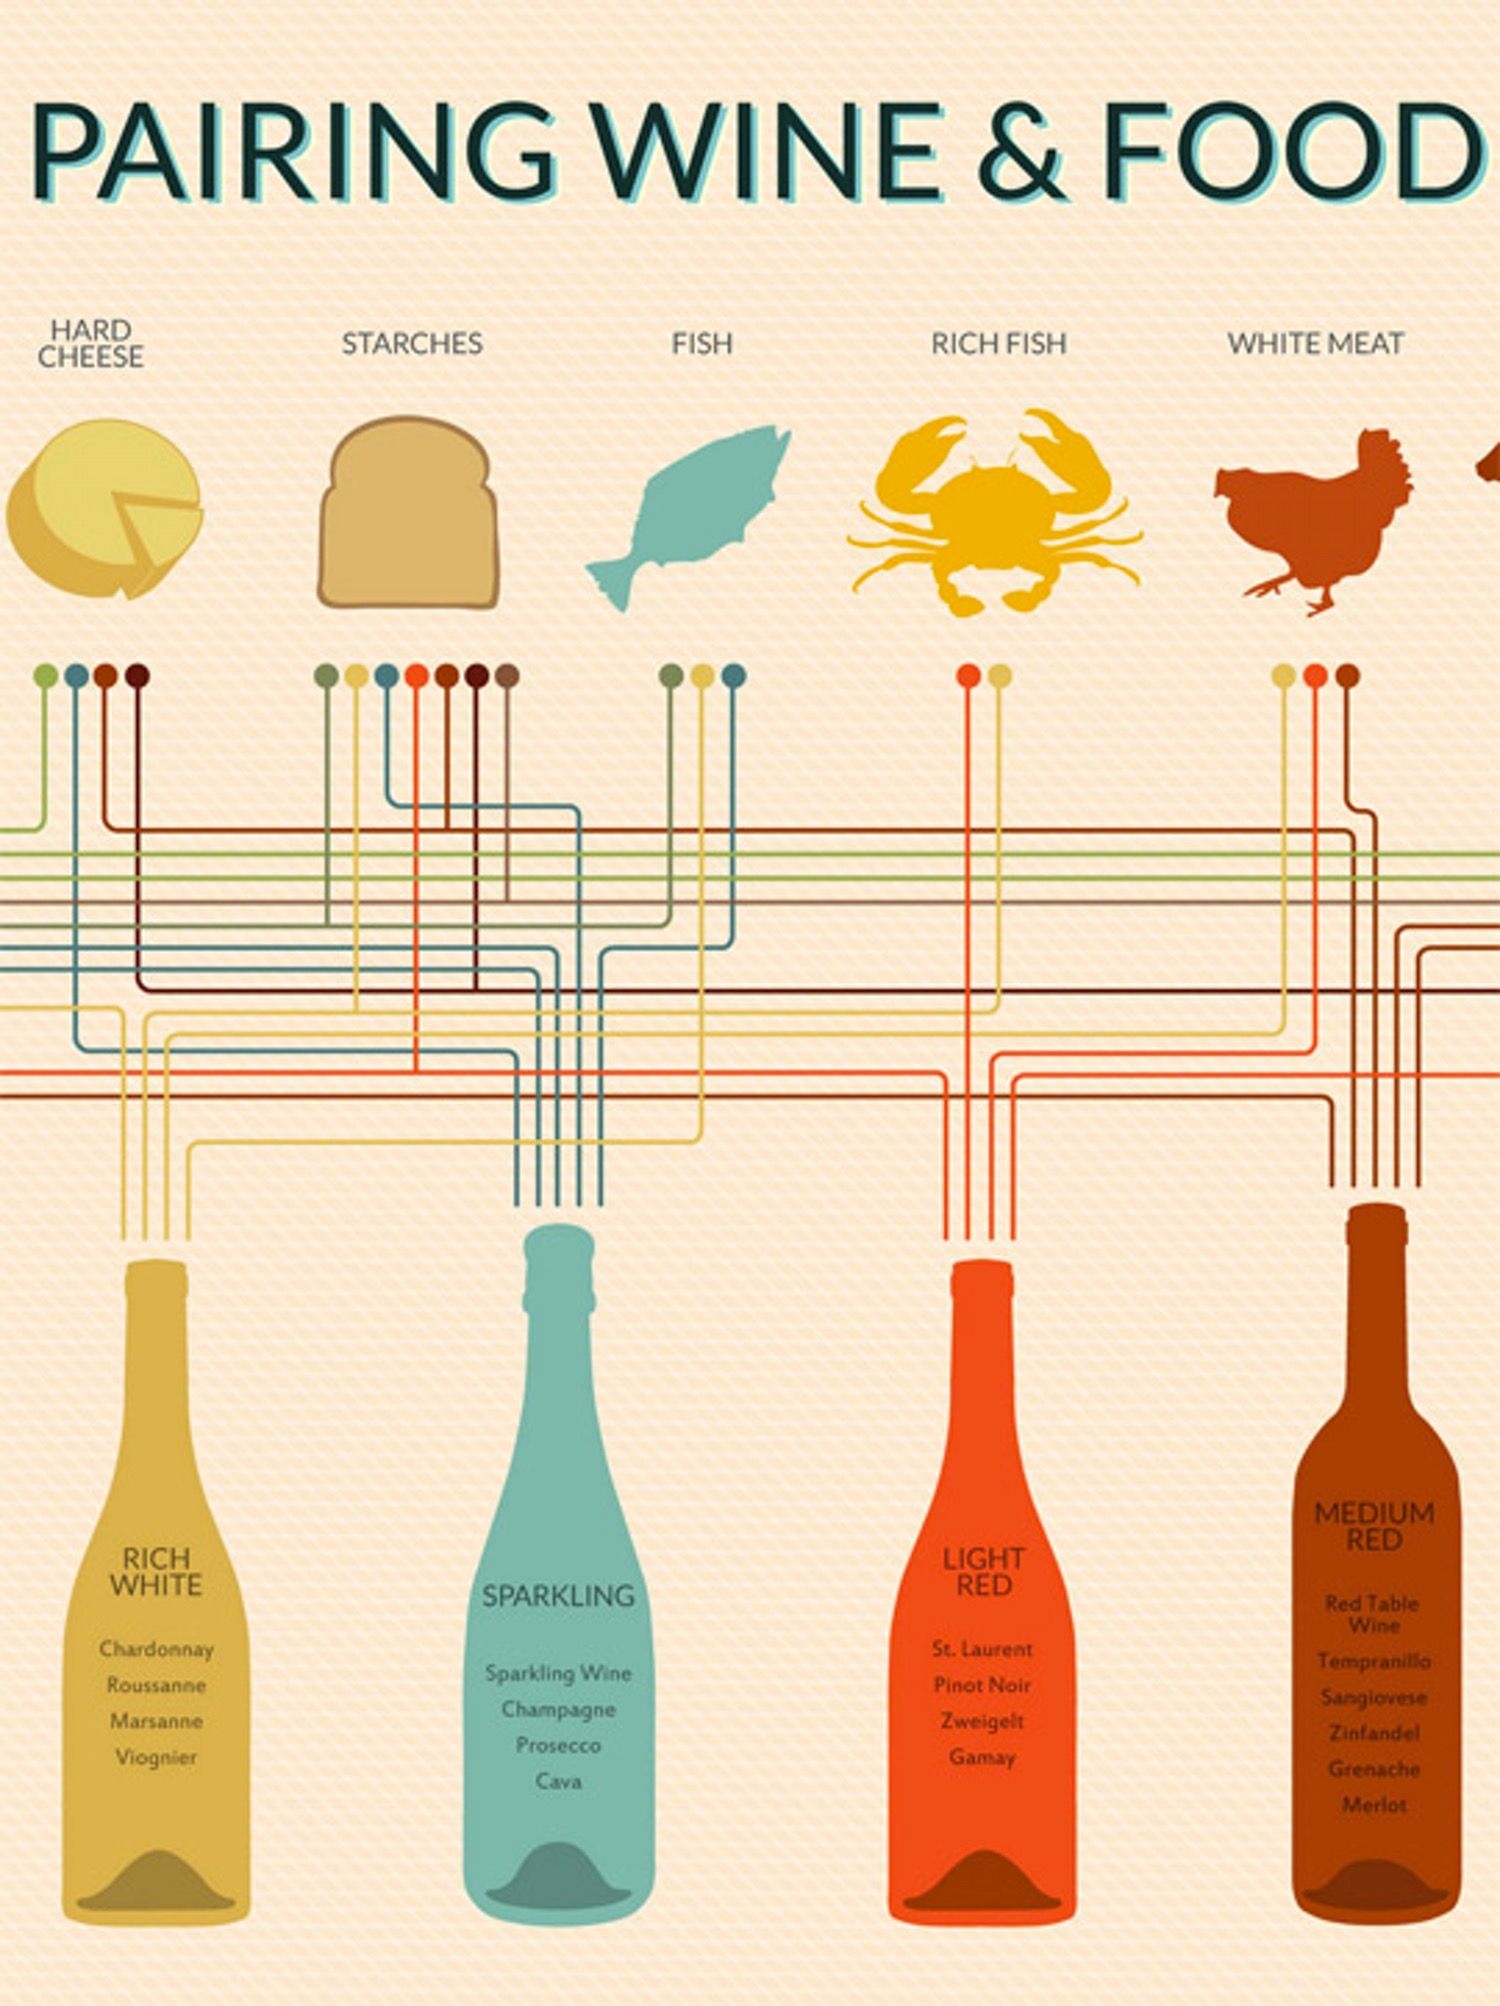 Ever Wonder What Wine Goes Best With What Food? This Chart Tells You